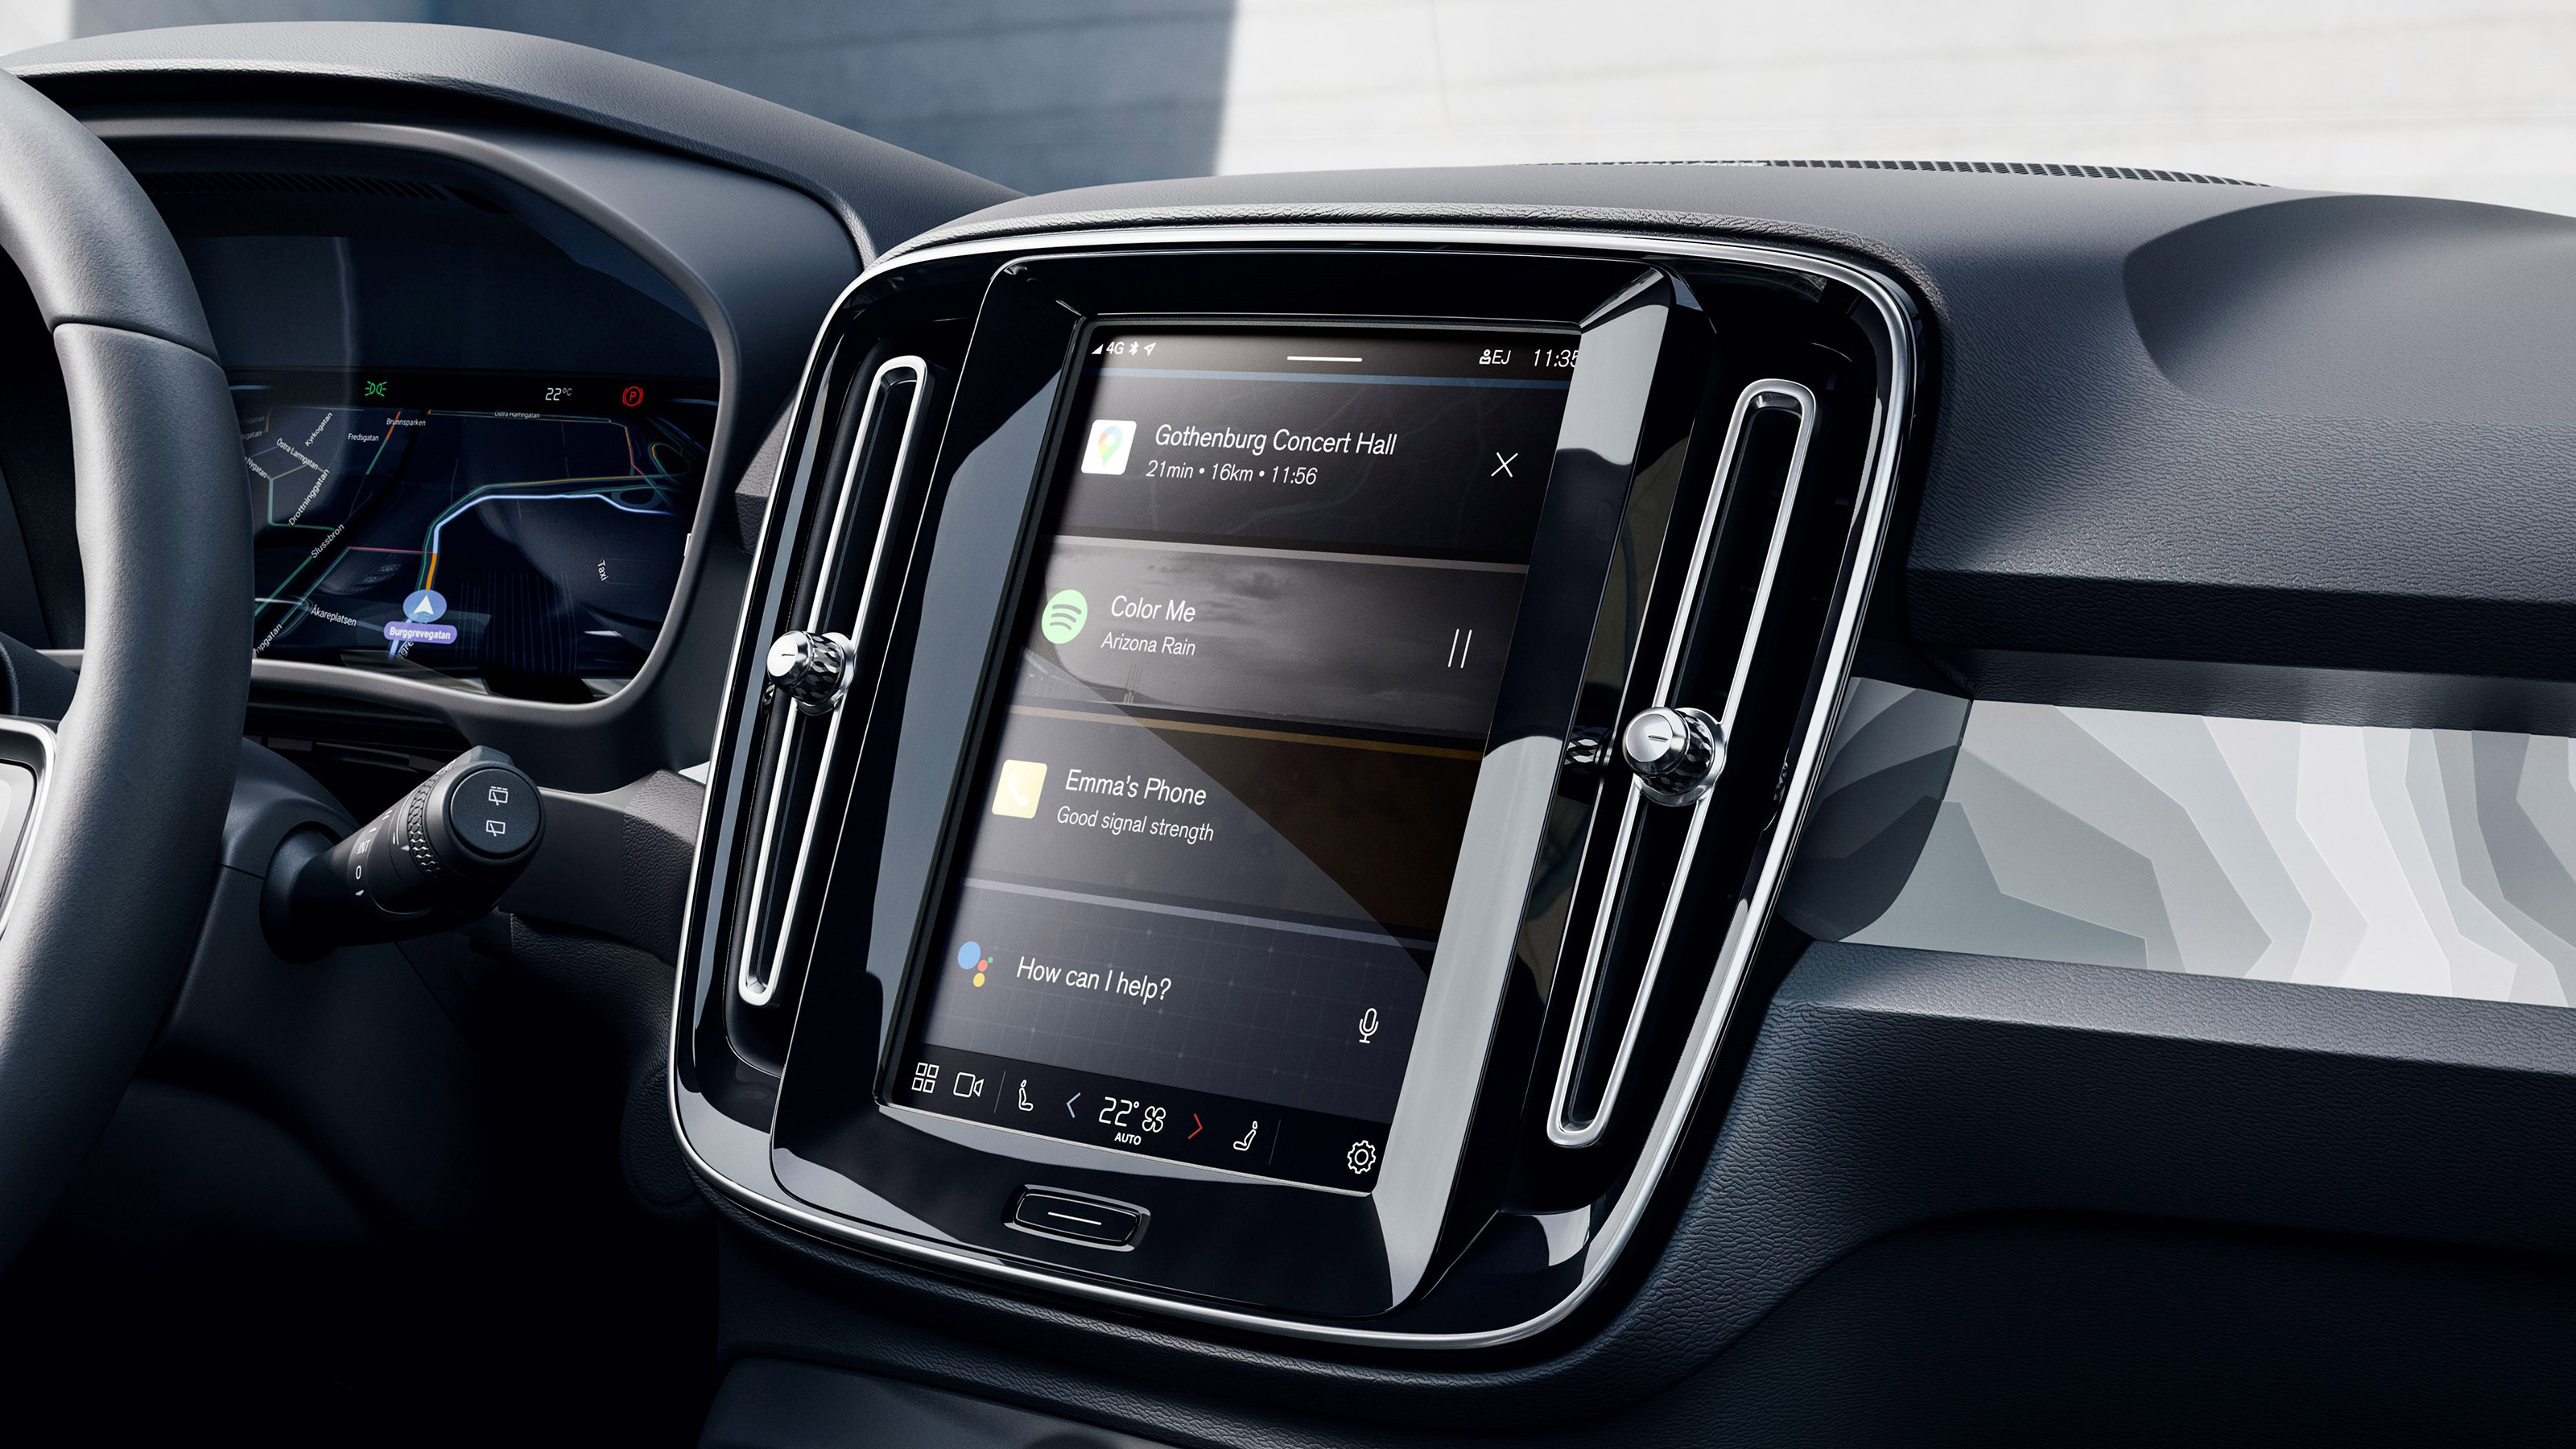 Infotainment System inside the 2022 Volvo C40 Recharge.